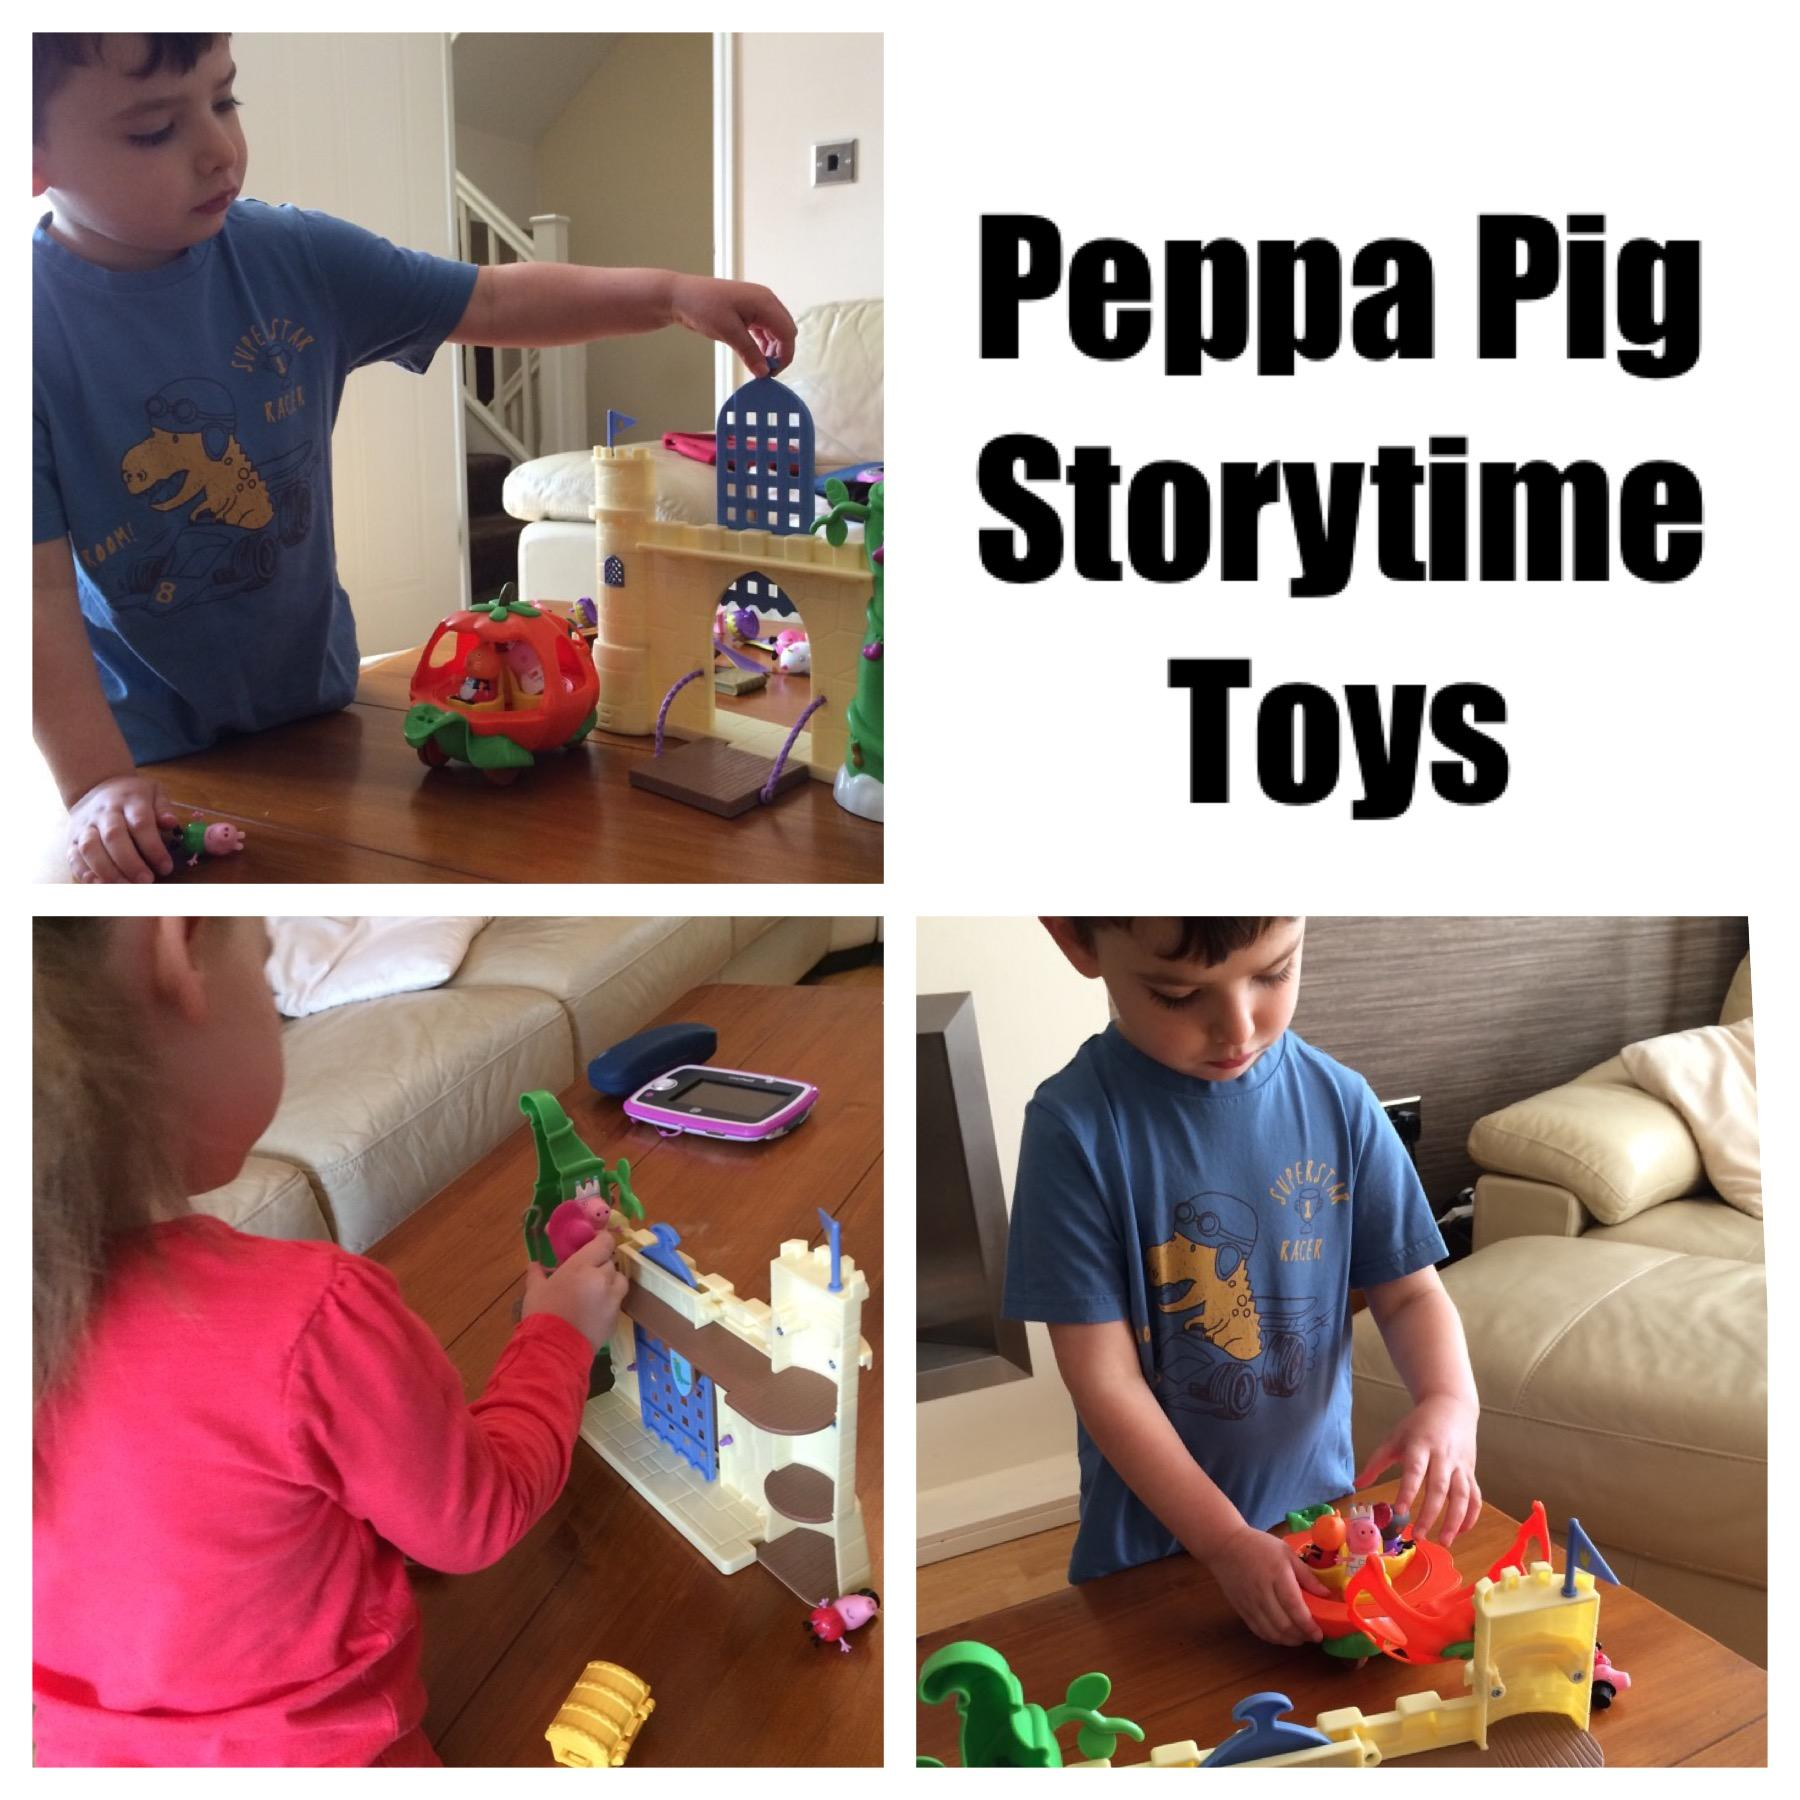 Peppa Pig Once Upon A Time Storytime Toys Review